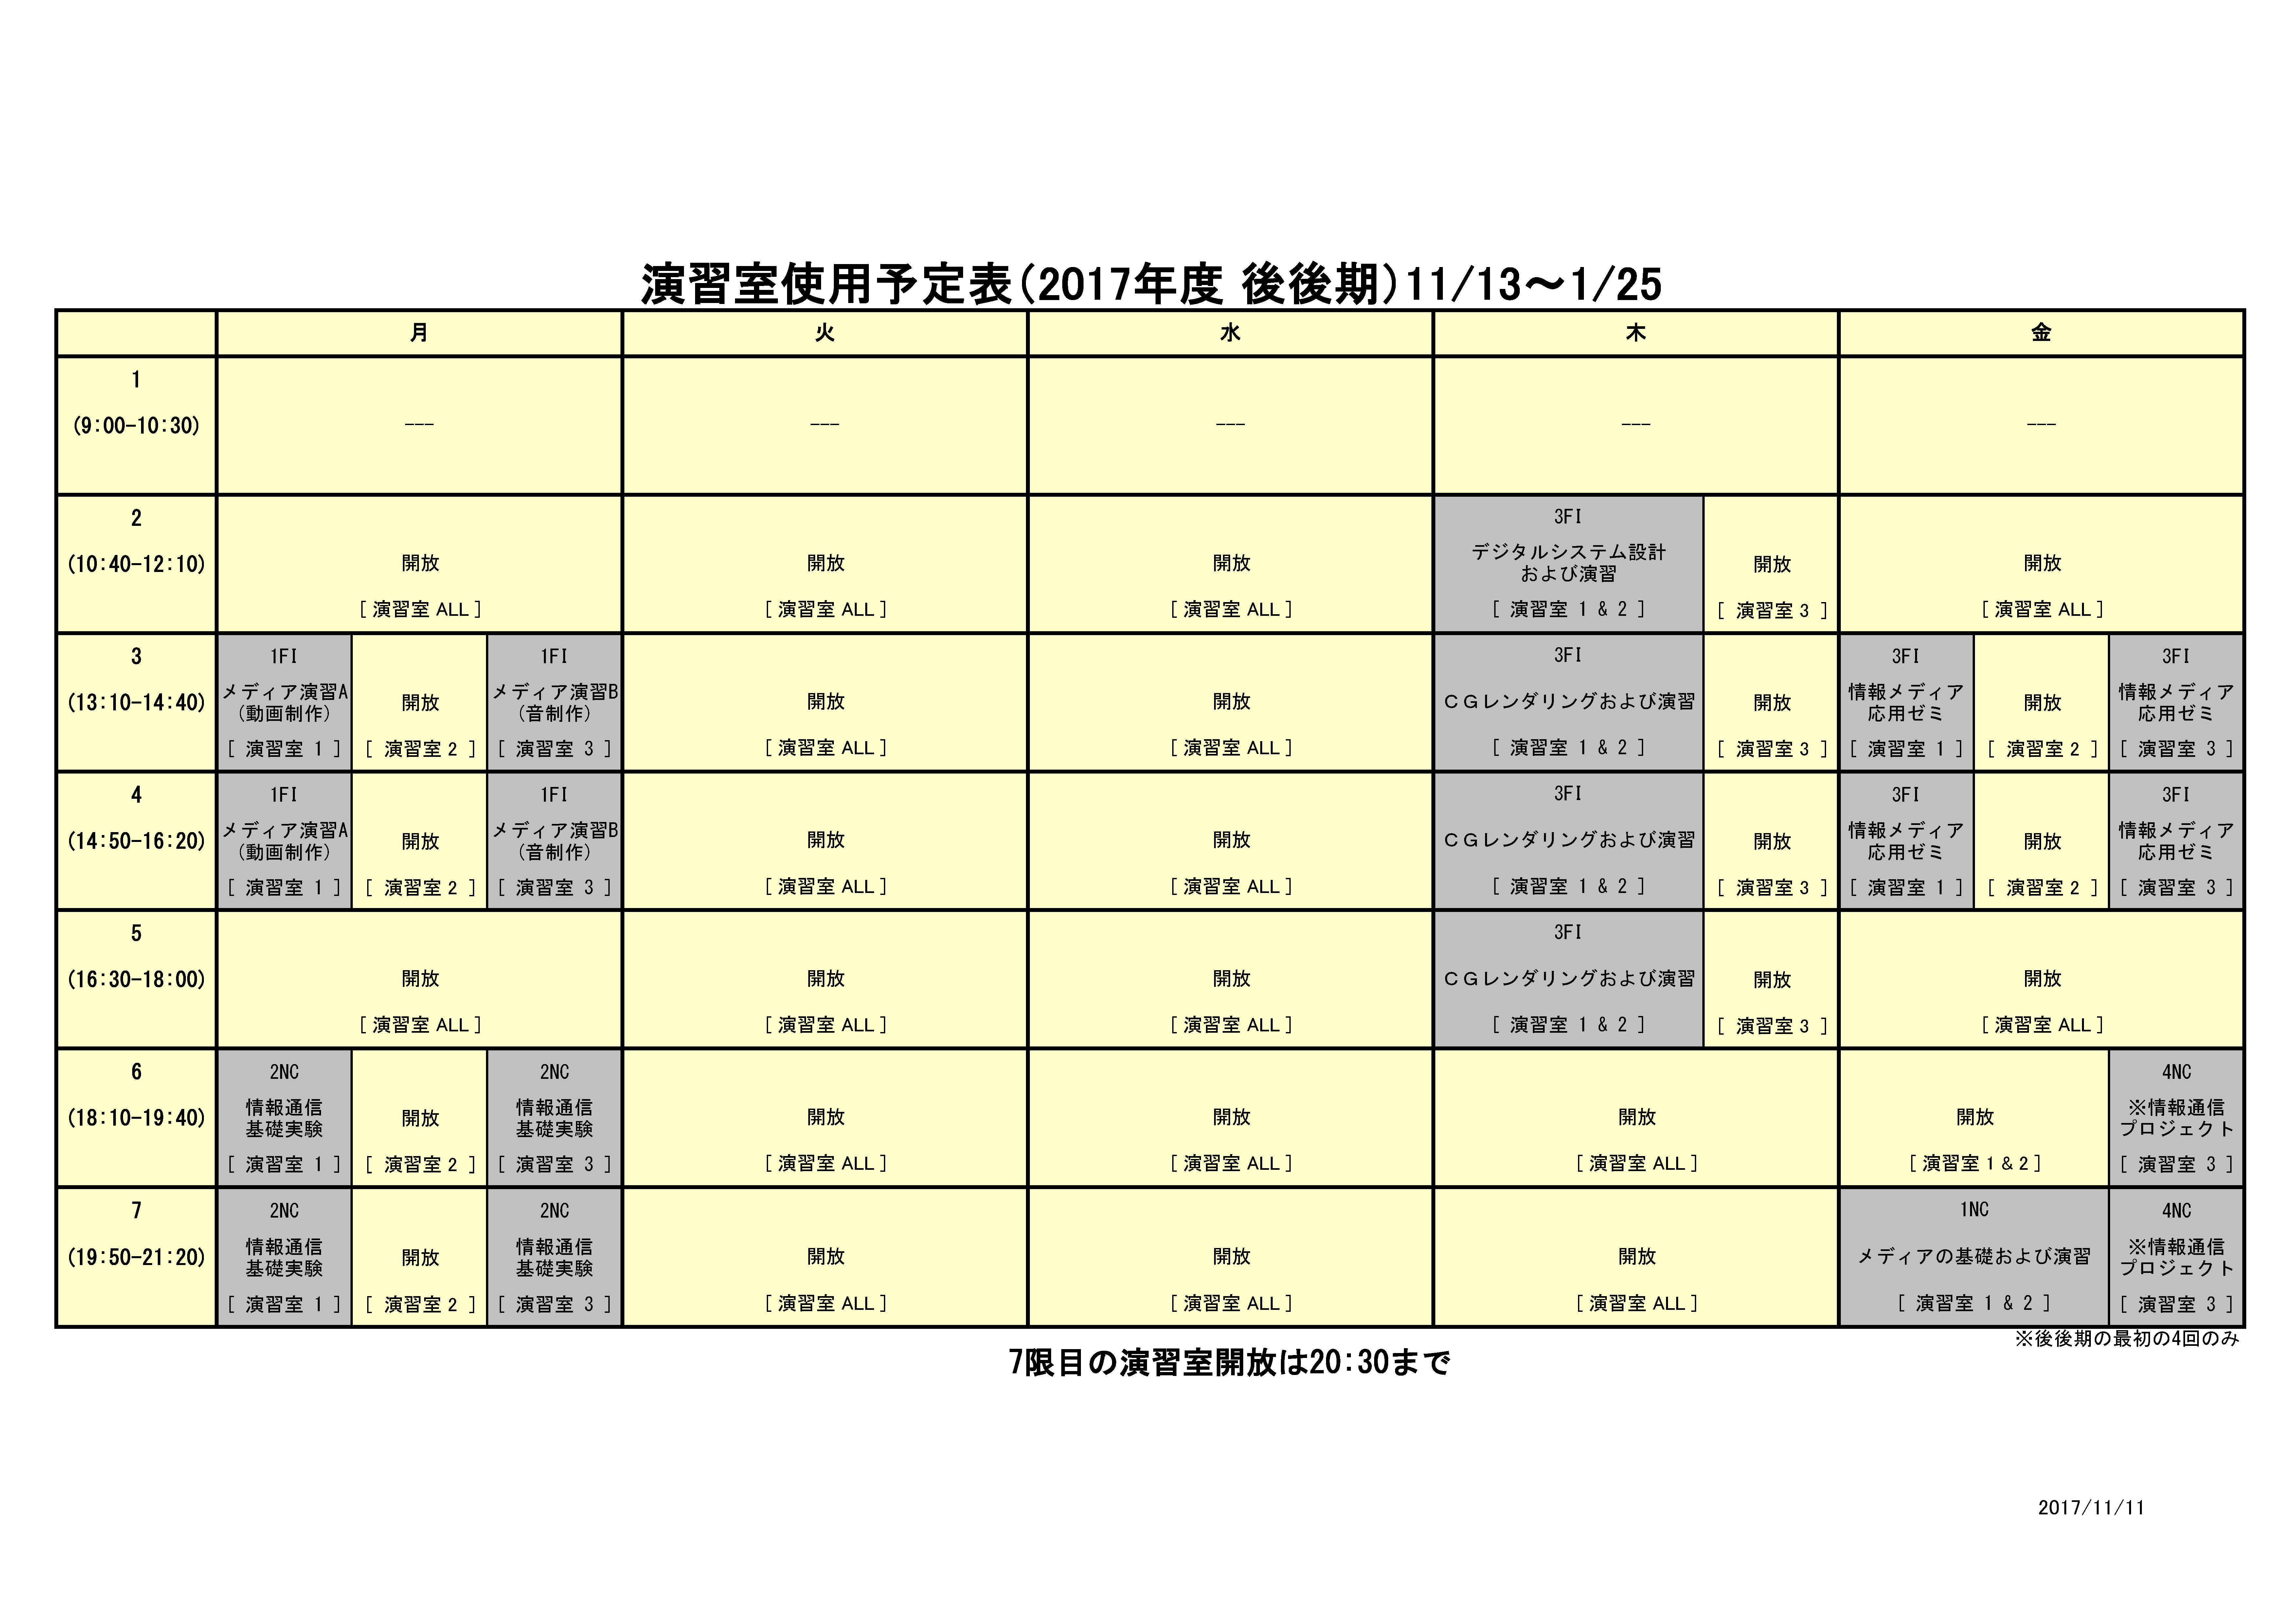 labo_timeTable_20171113-0125.png